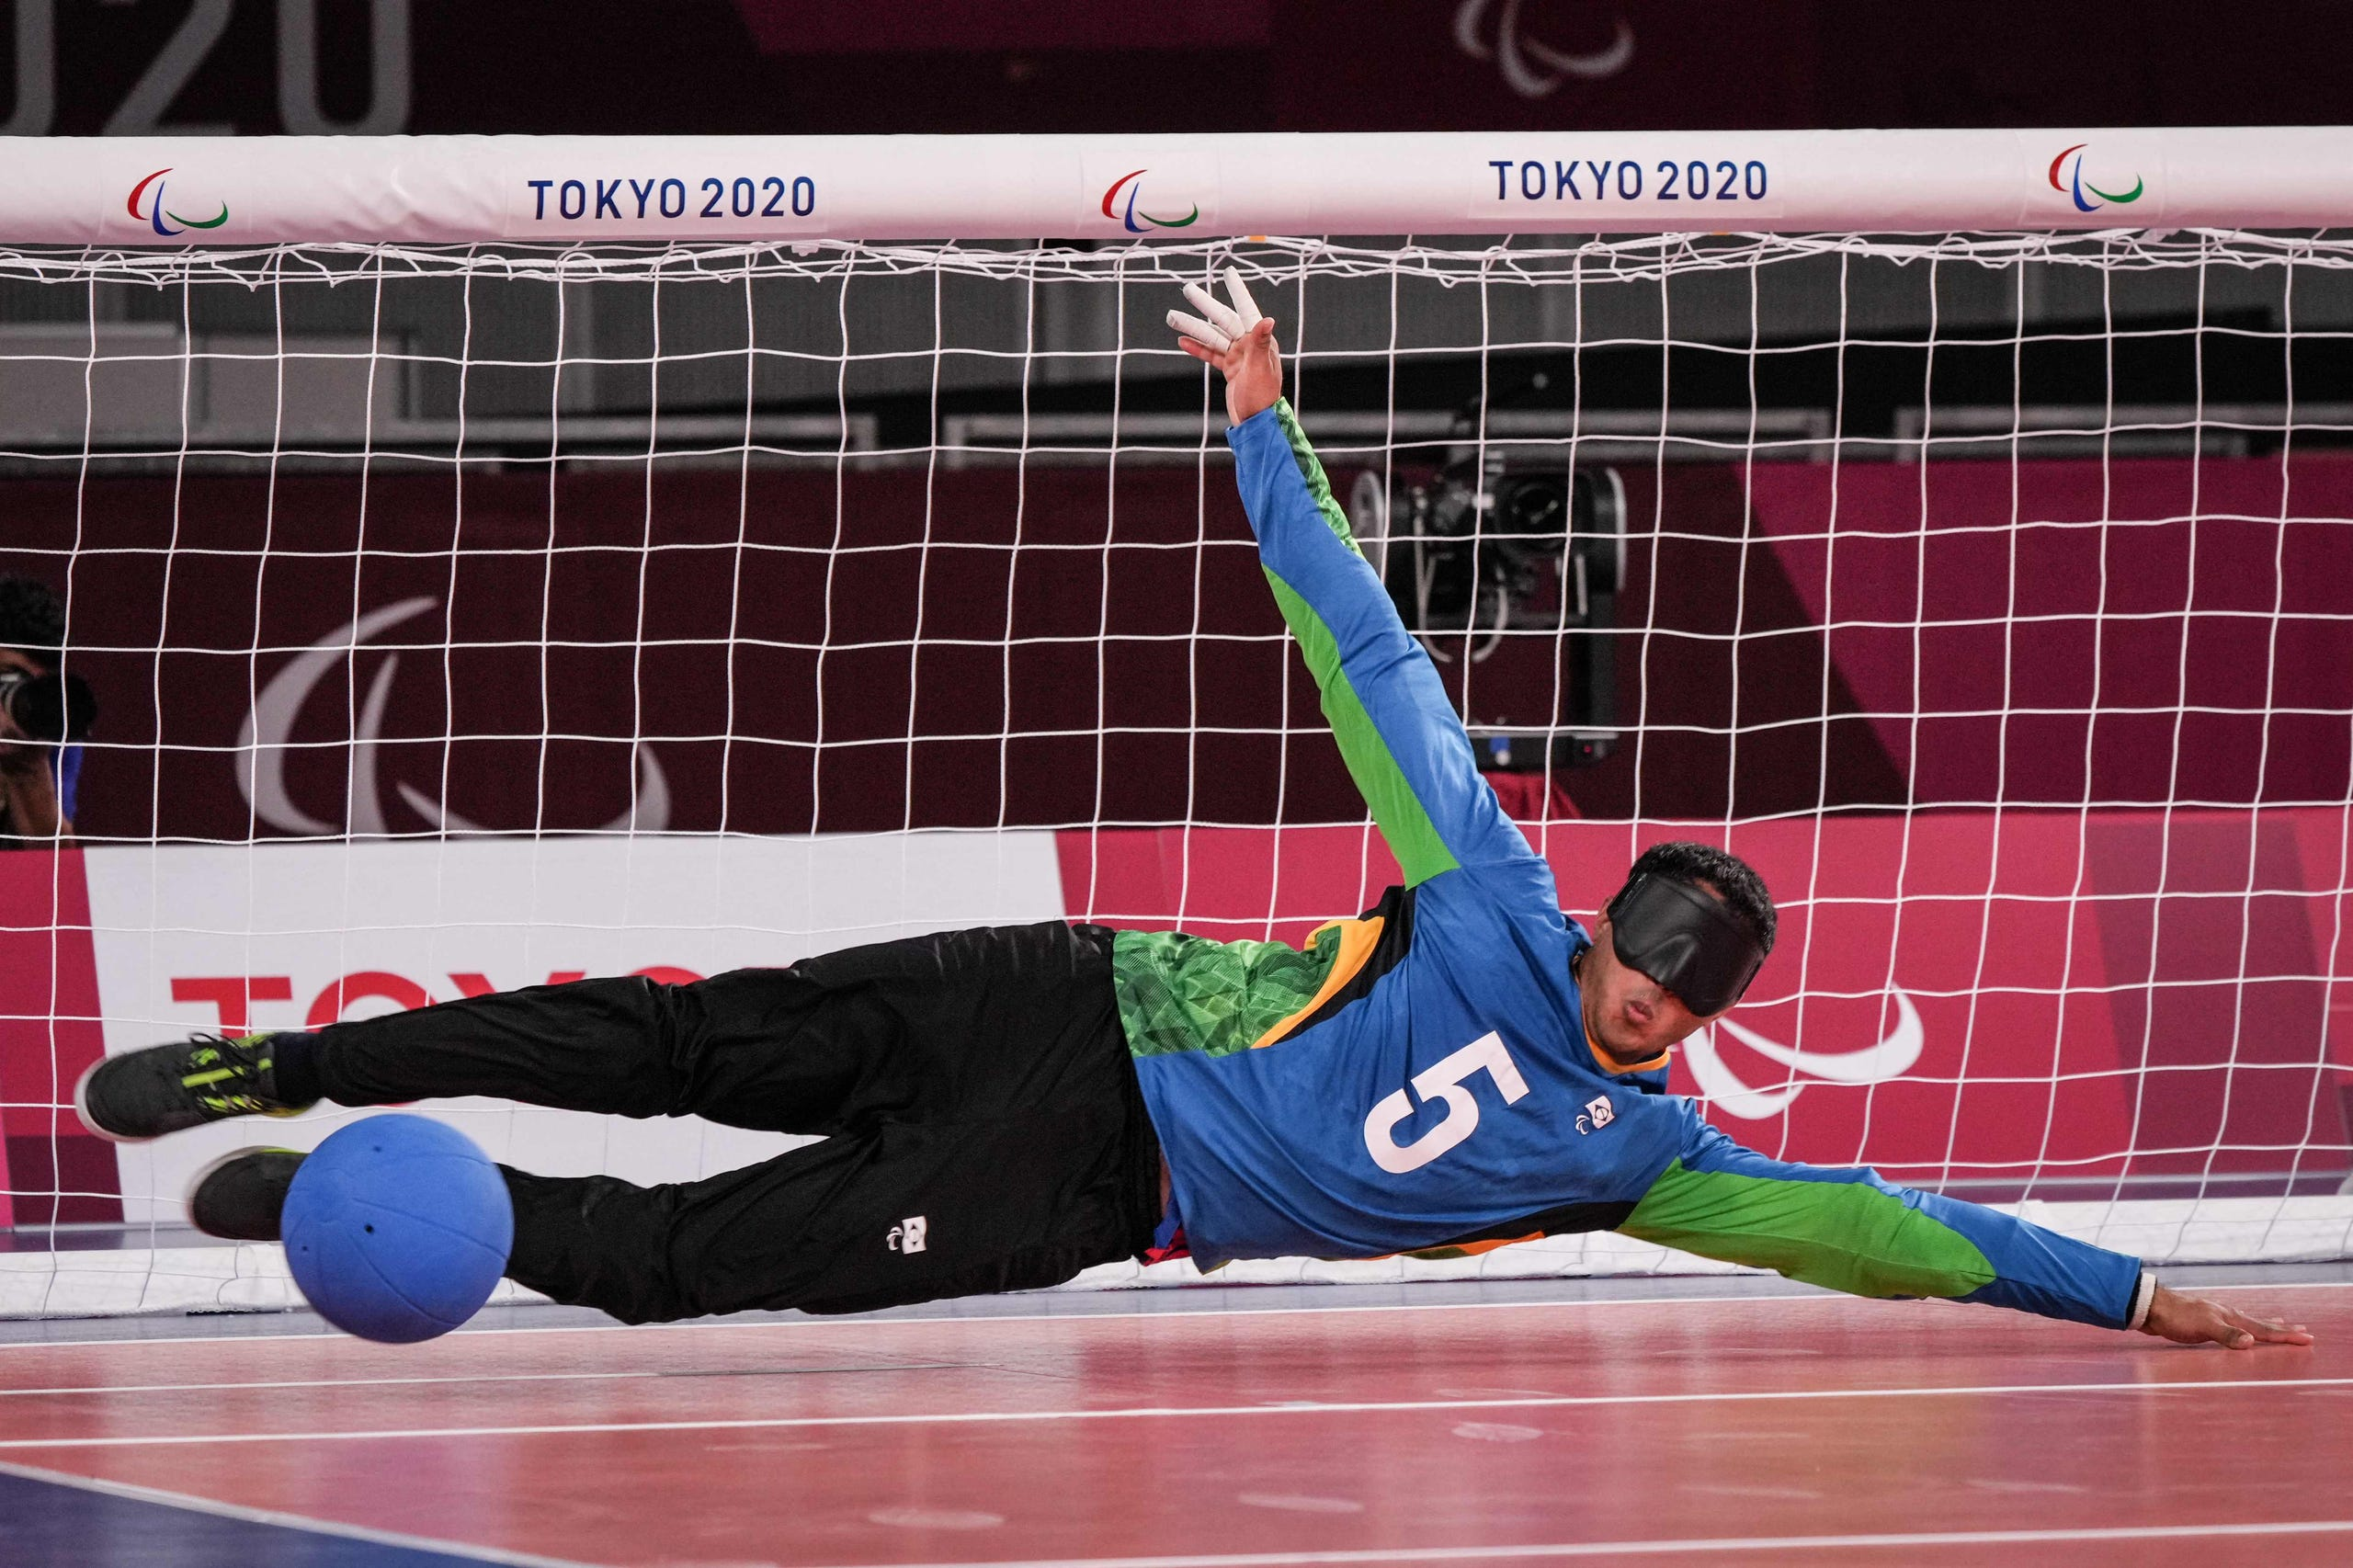 August 26, 2021: Brazil's Josemarcio Sousa dives to defend during the goalball preliminary group A match against USA at the Tokyo 2020 Paralympic Games at Makuhari Messe Hall in Tokyo.